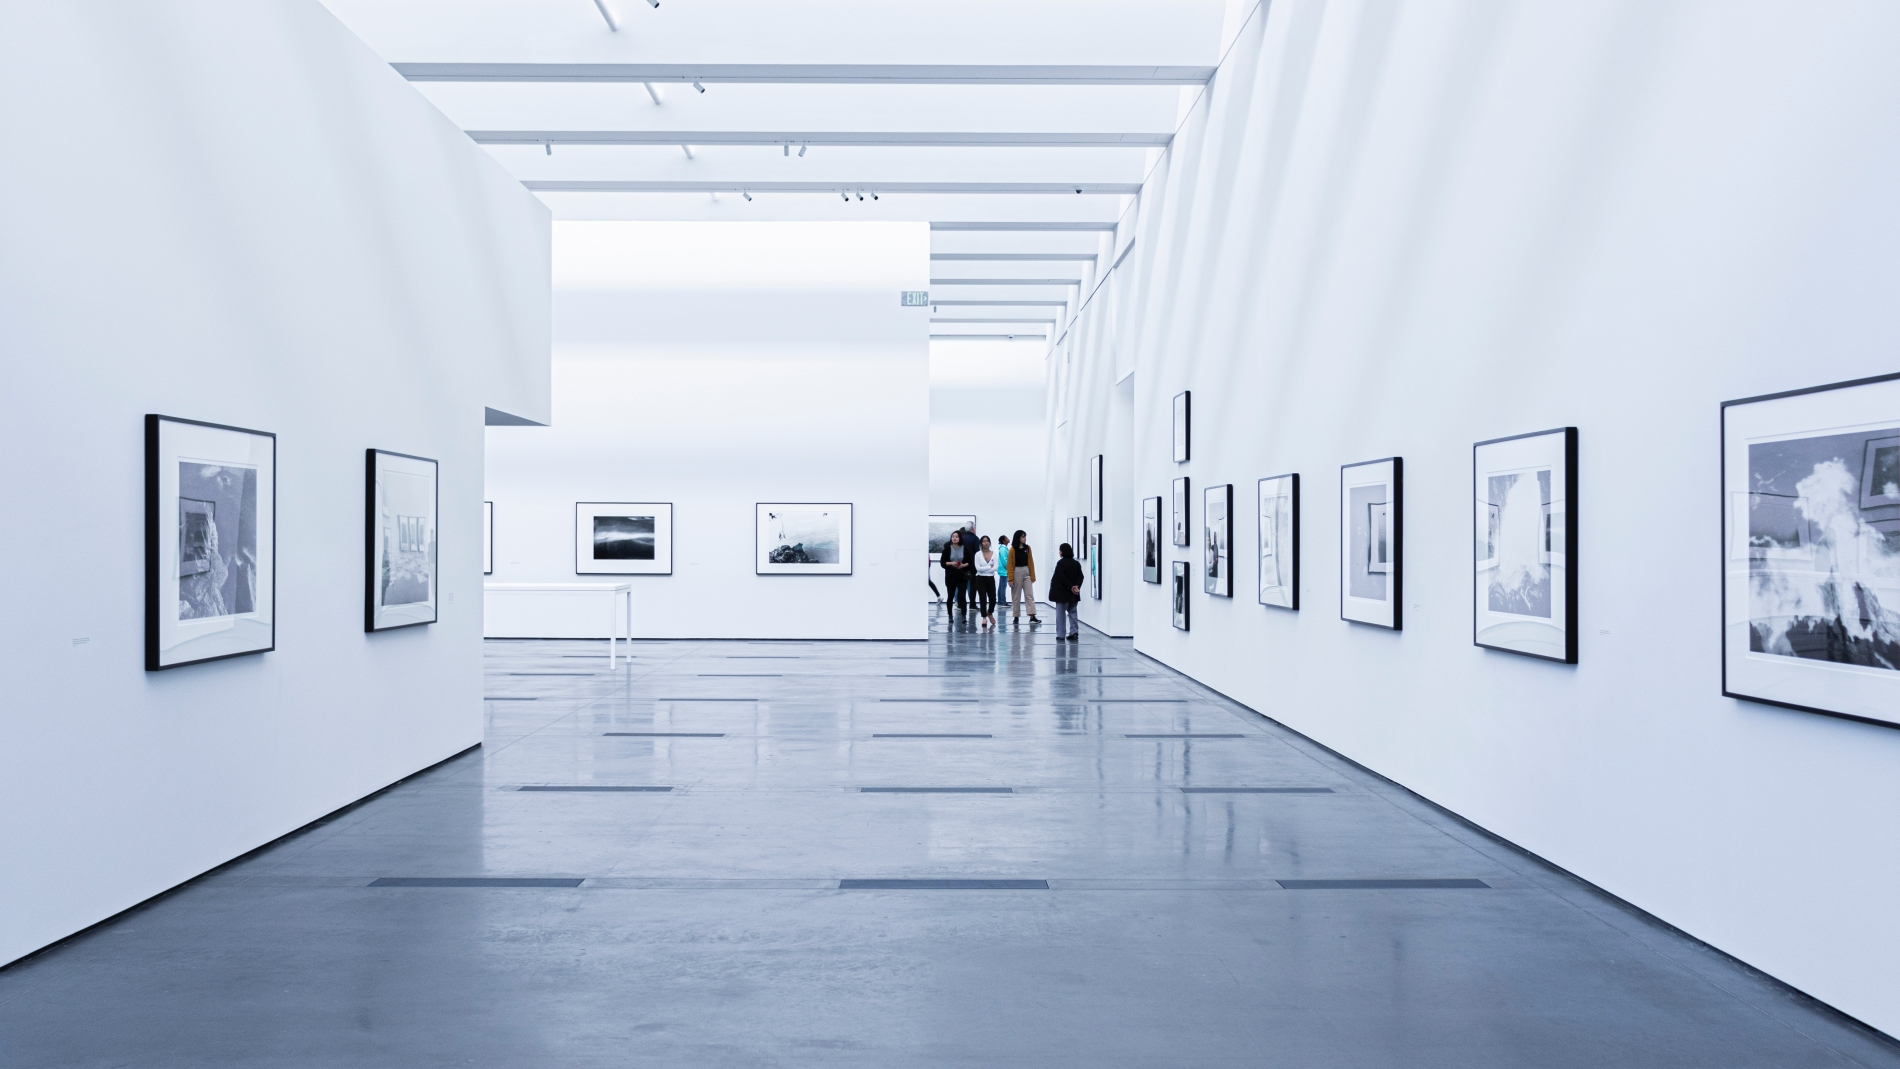 Art gallery hallway with white walls